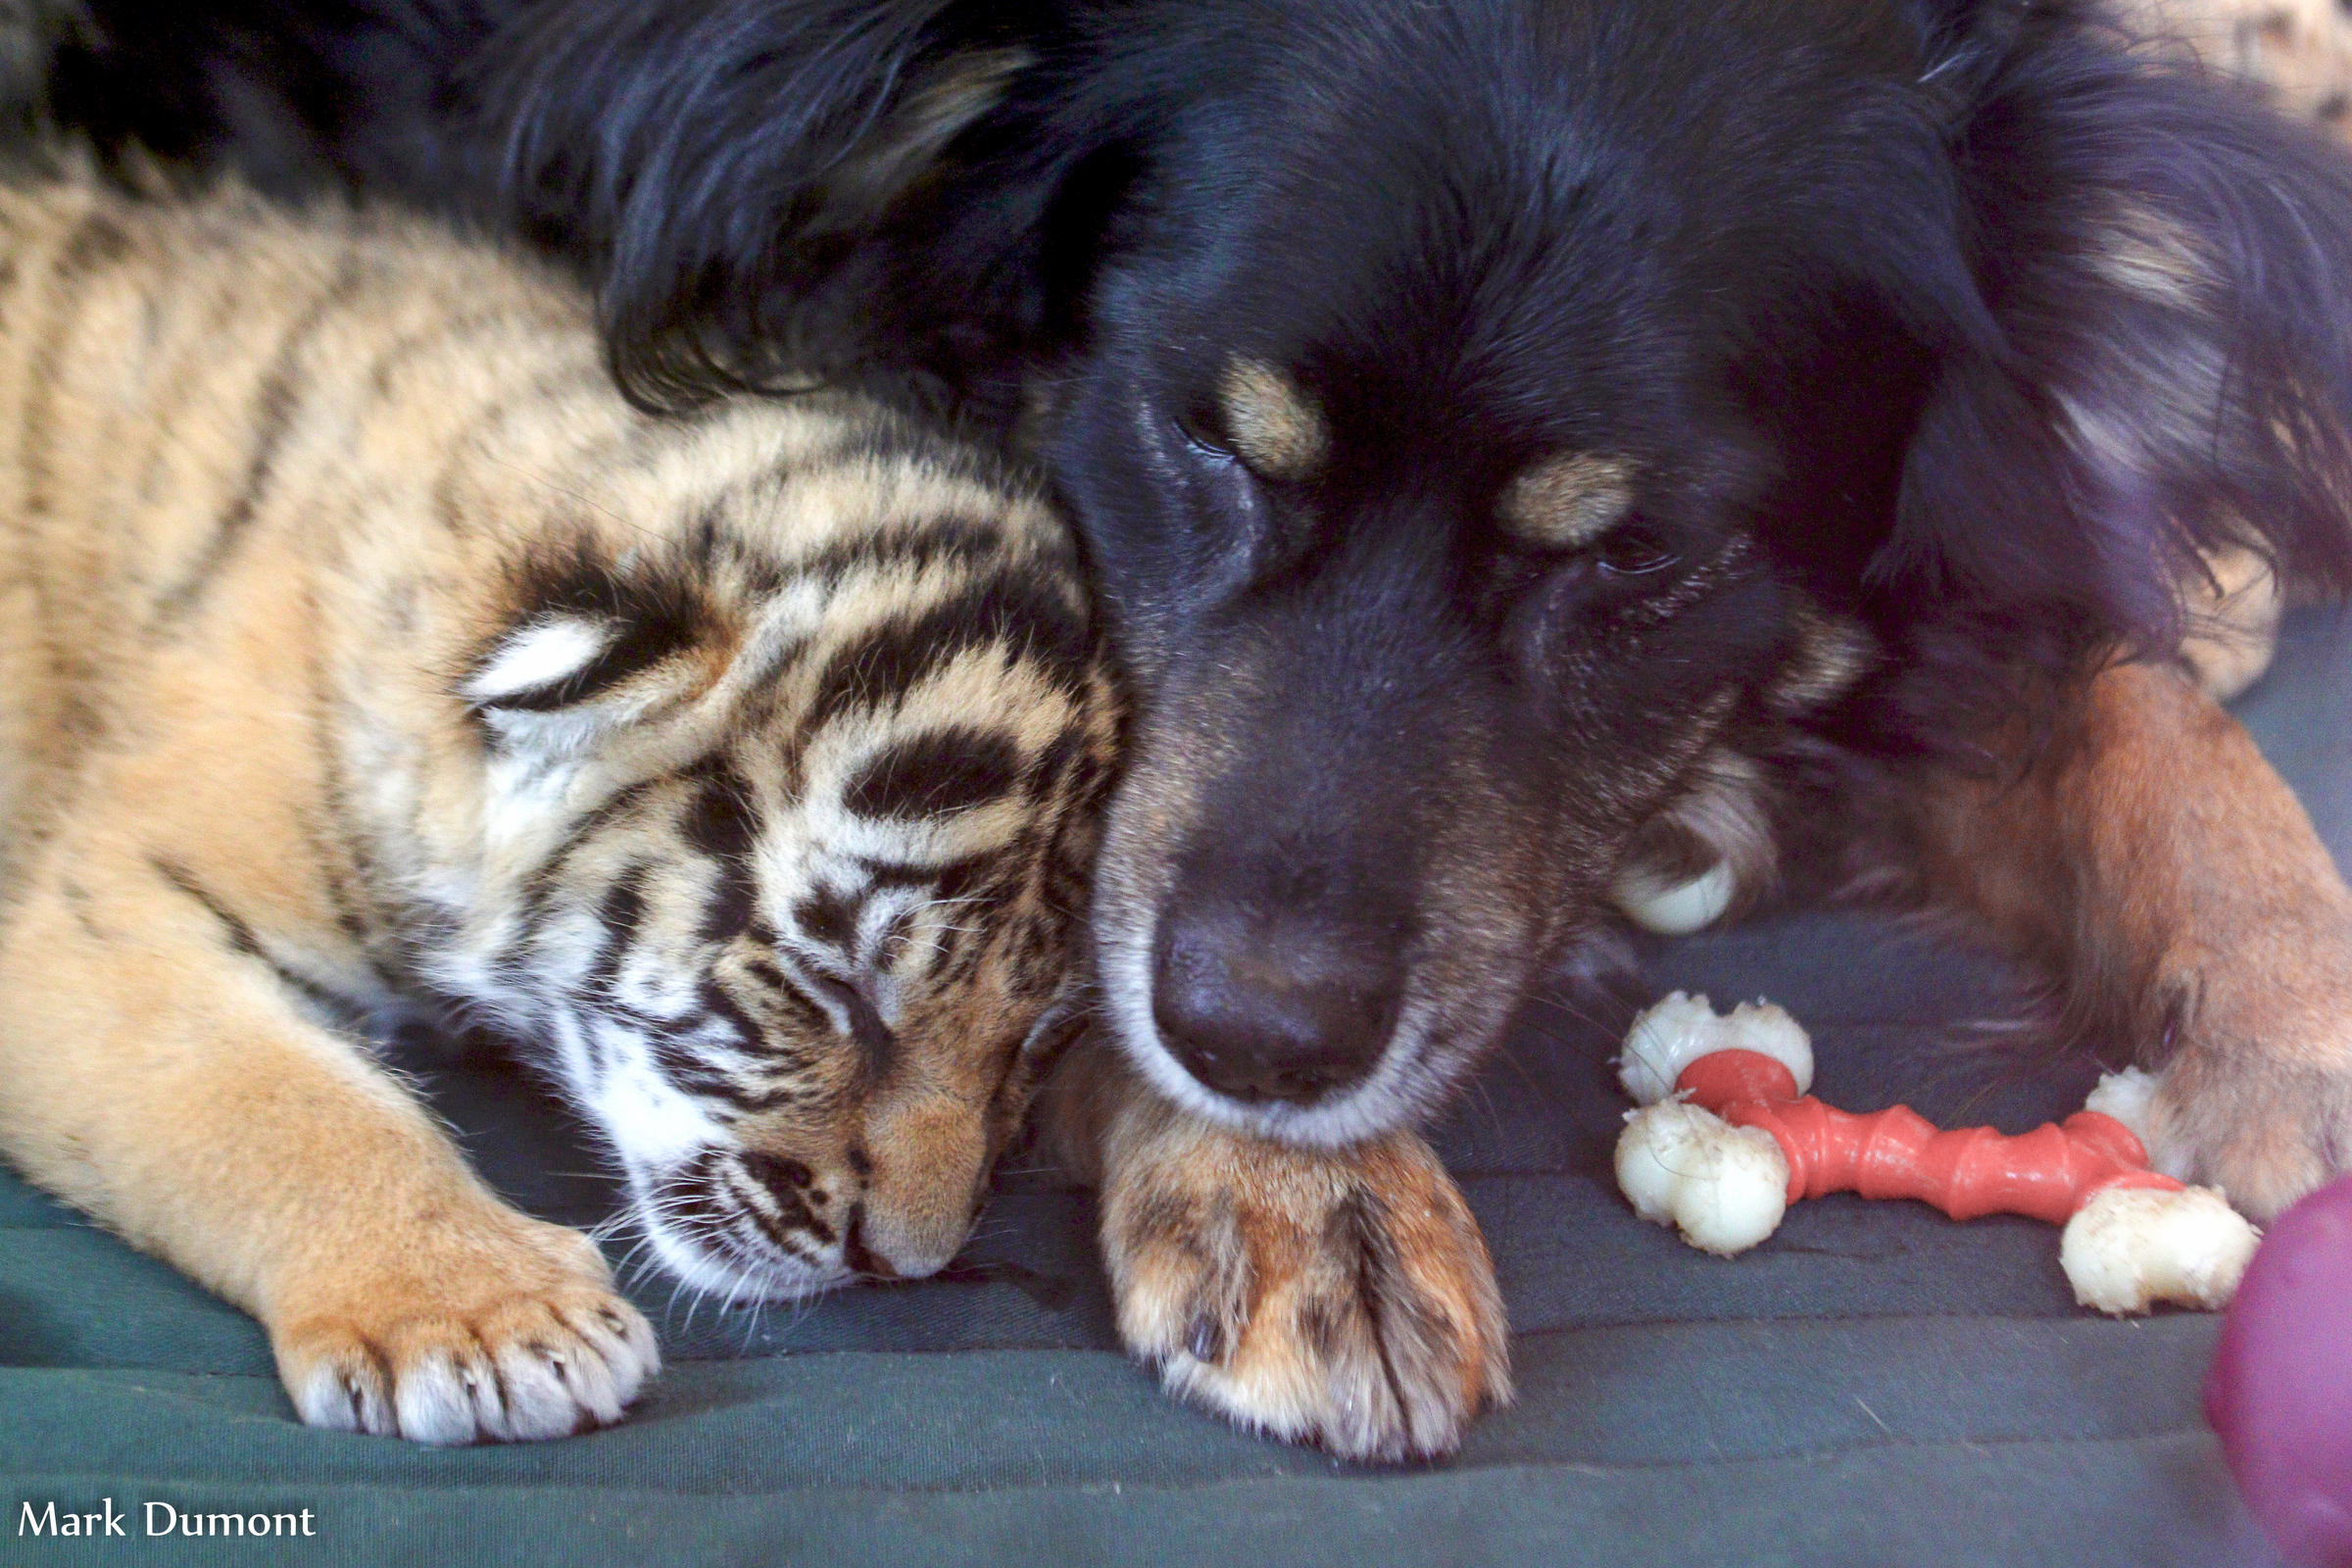 Year-old dog raises 3 abandoned tiger cubs